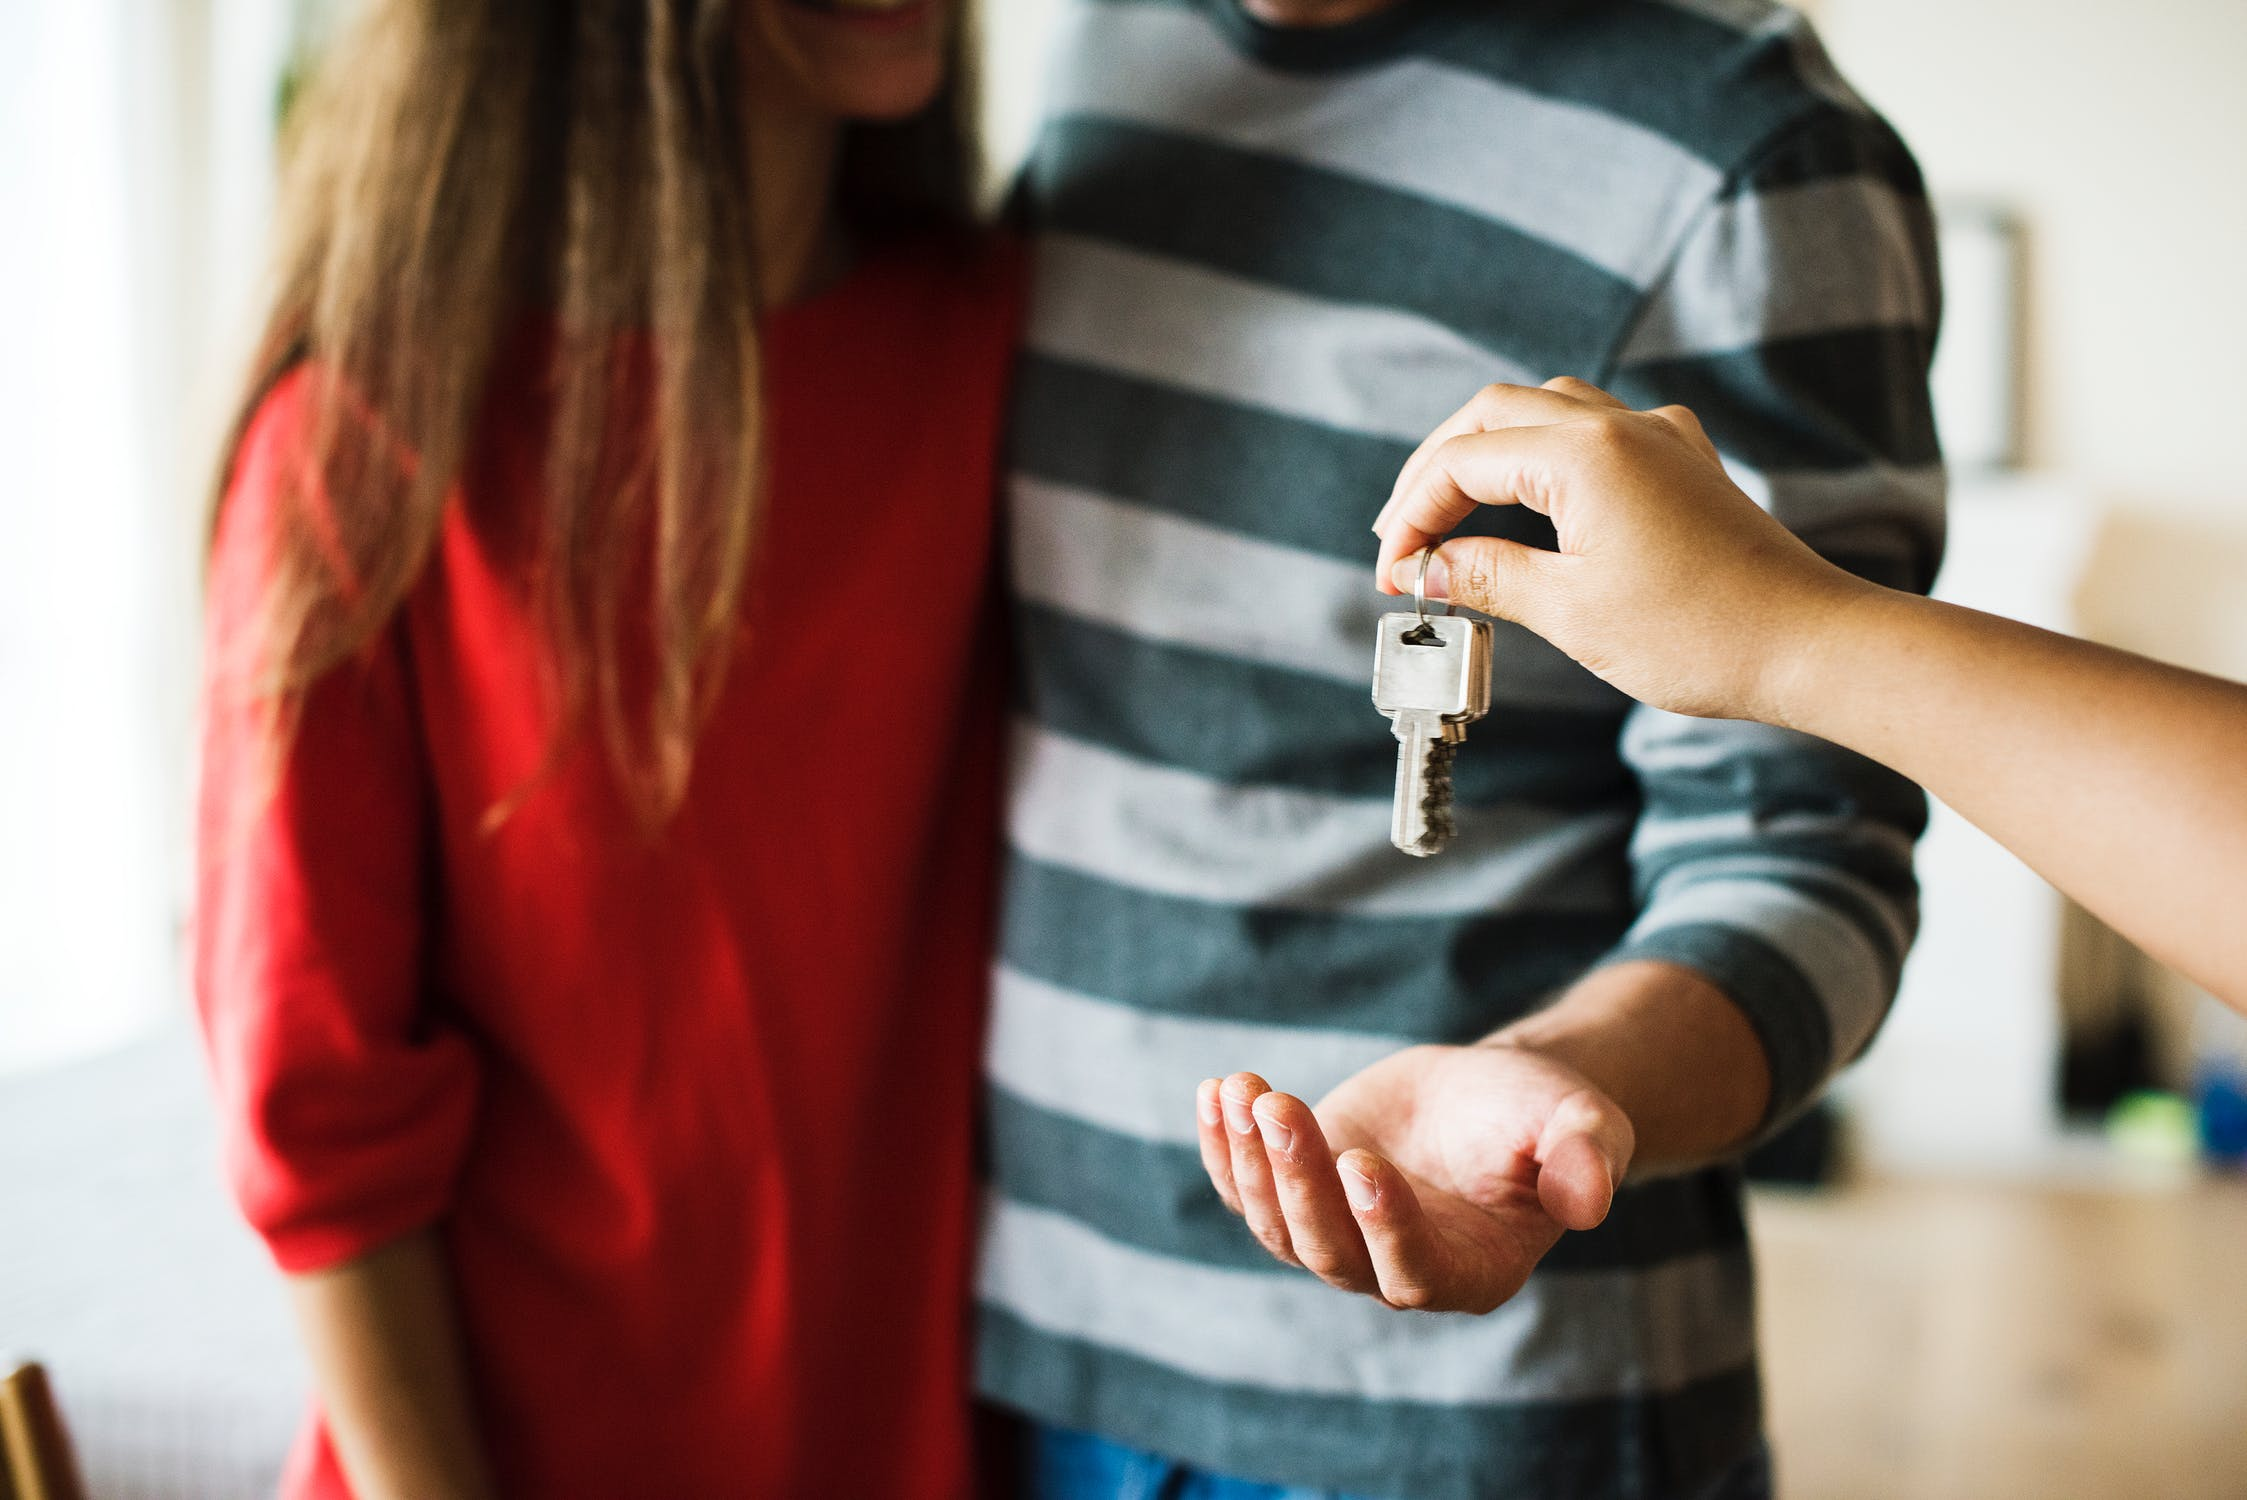 First Home Buyers Tips And Tricks: Affordable Housing Ballots.